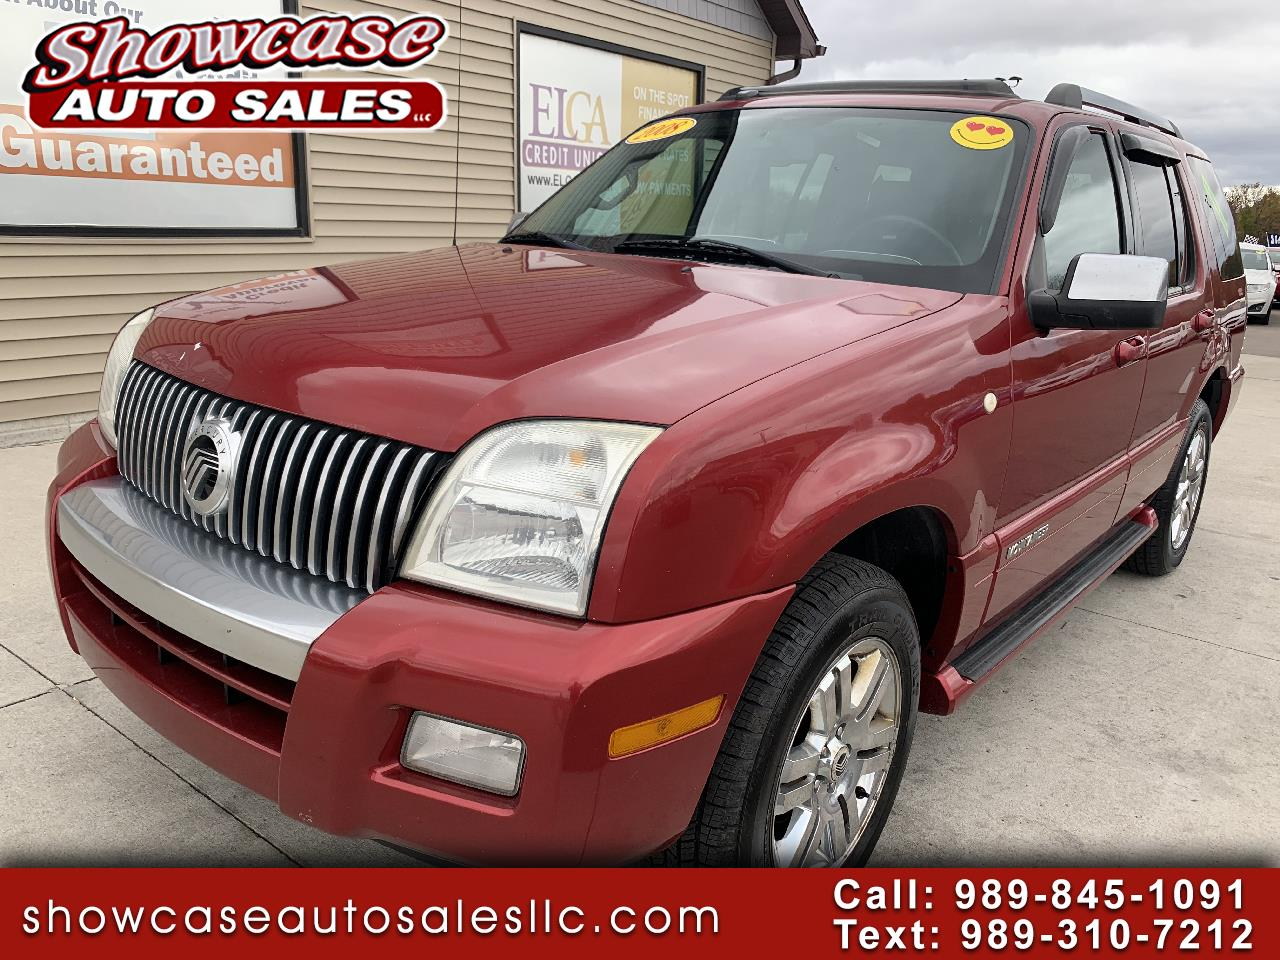 Mercury Mountaineer AWD 4dr V6 Premier 2008